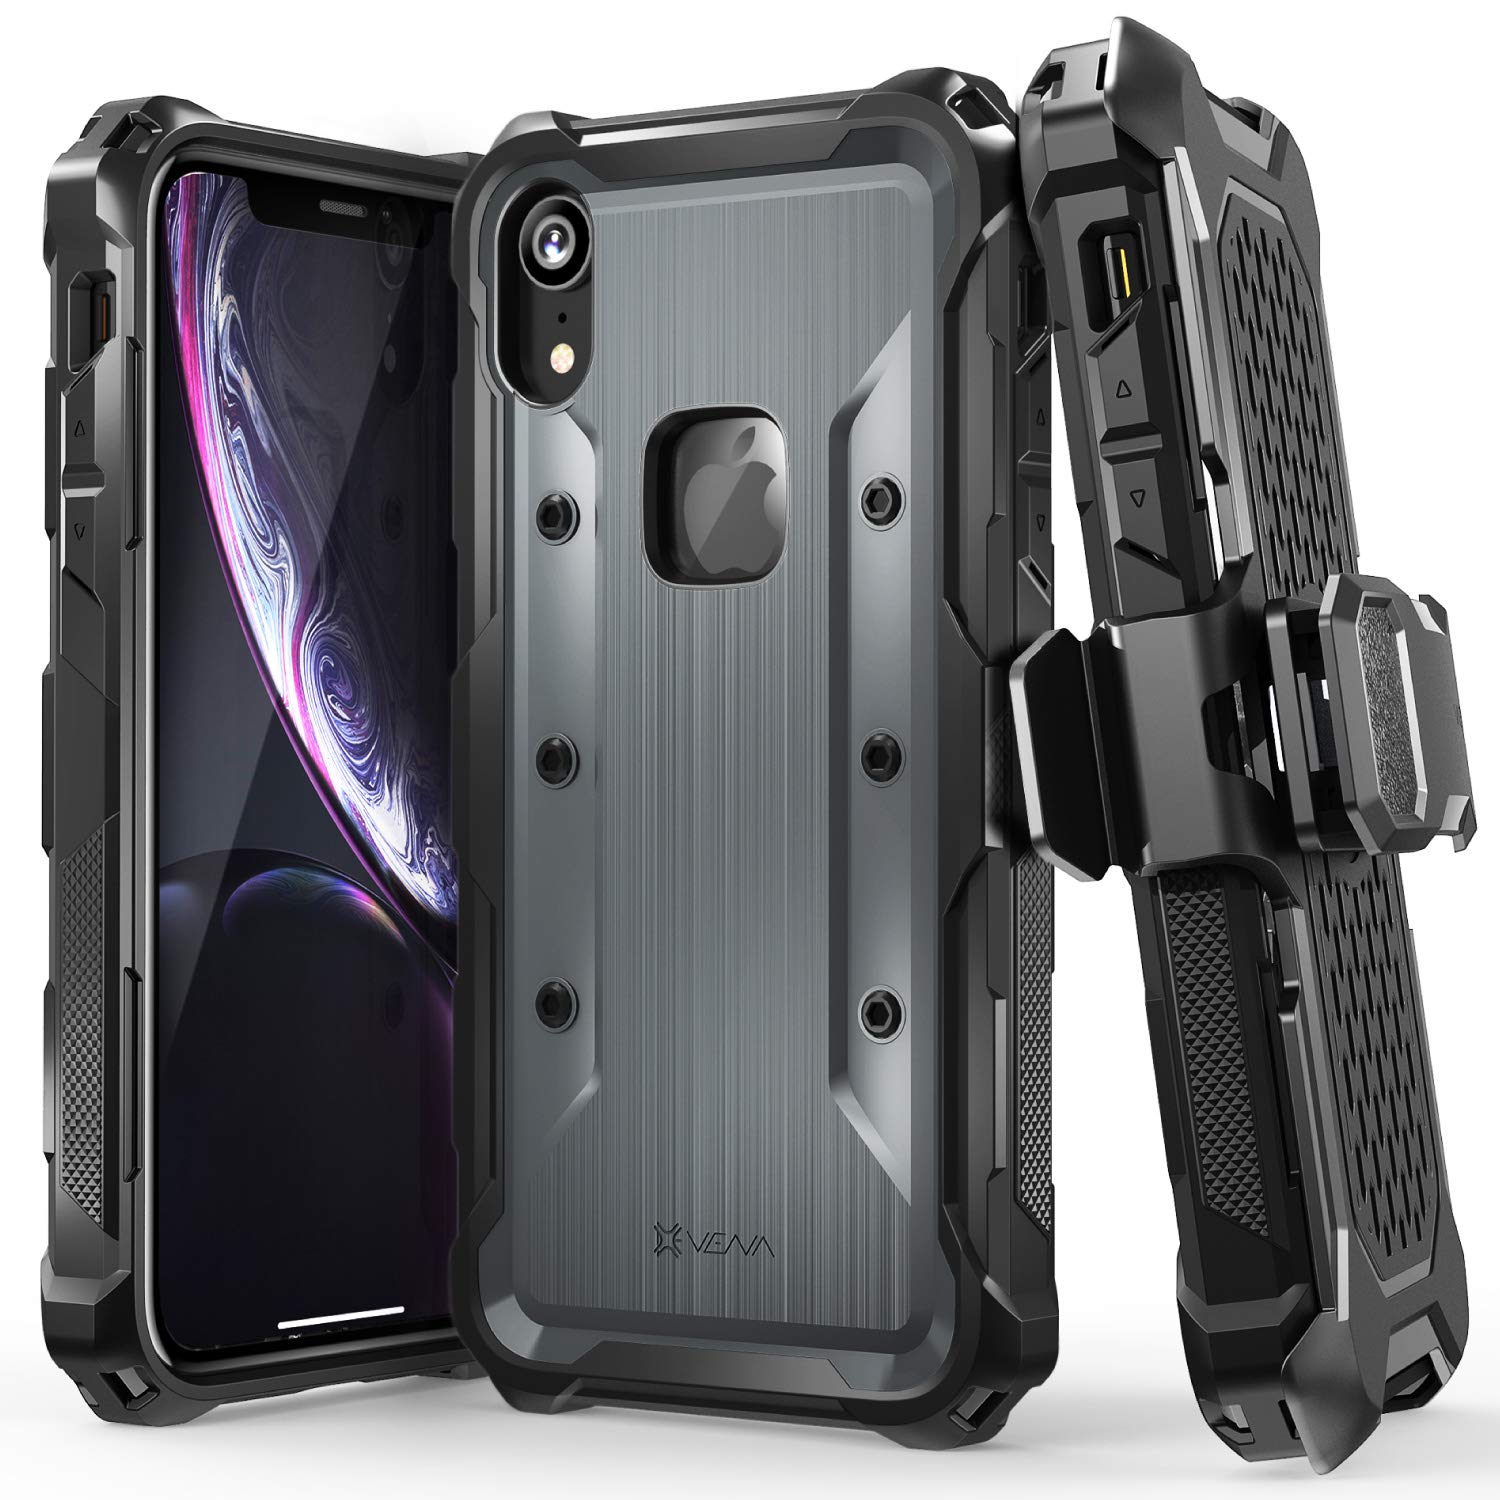 Vena (vArmor) iPhone XR Holster Case, Rugged Military Grade Heavy Duty Case with Belt Clip Swivel Holster and Kickstand, Compatible with iPhone XR (Black-Space Gray) by Vena